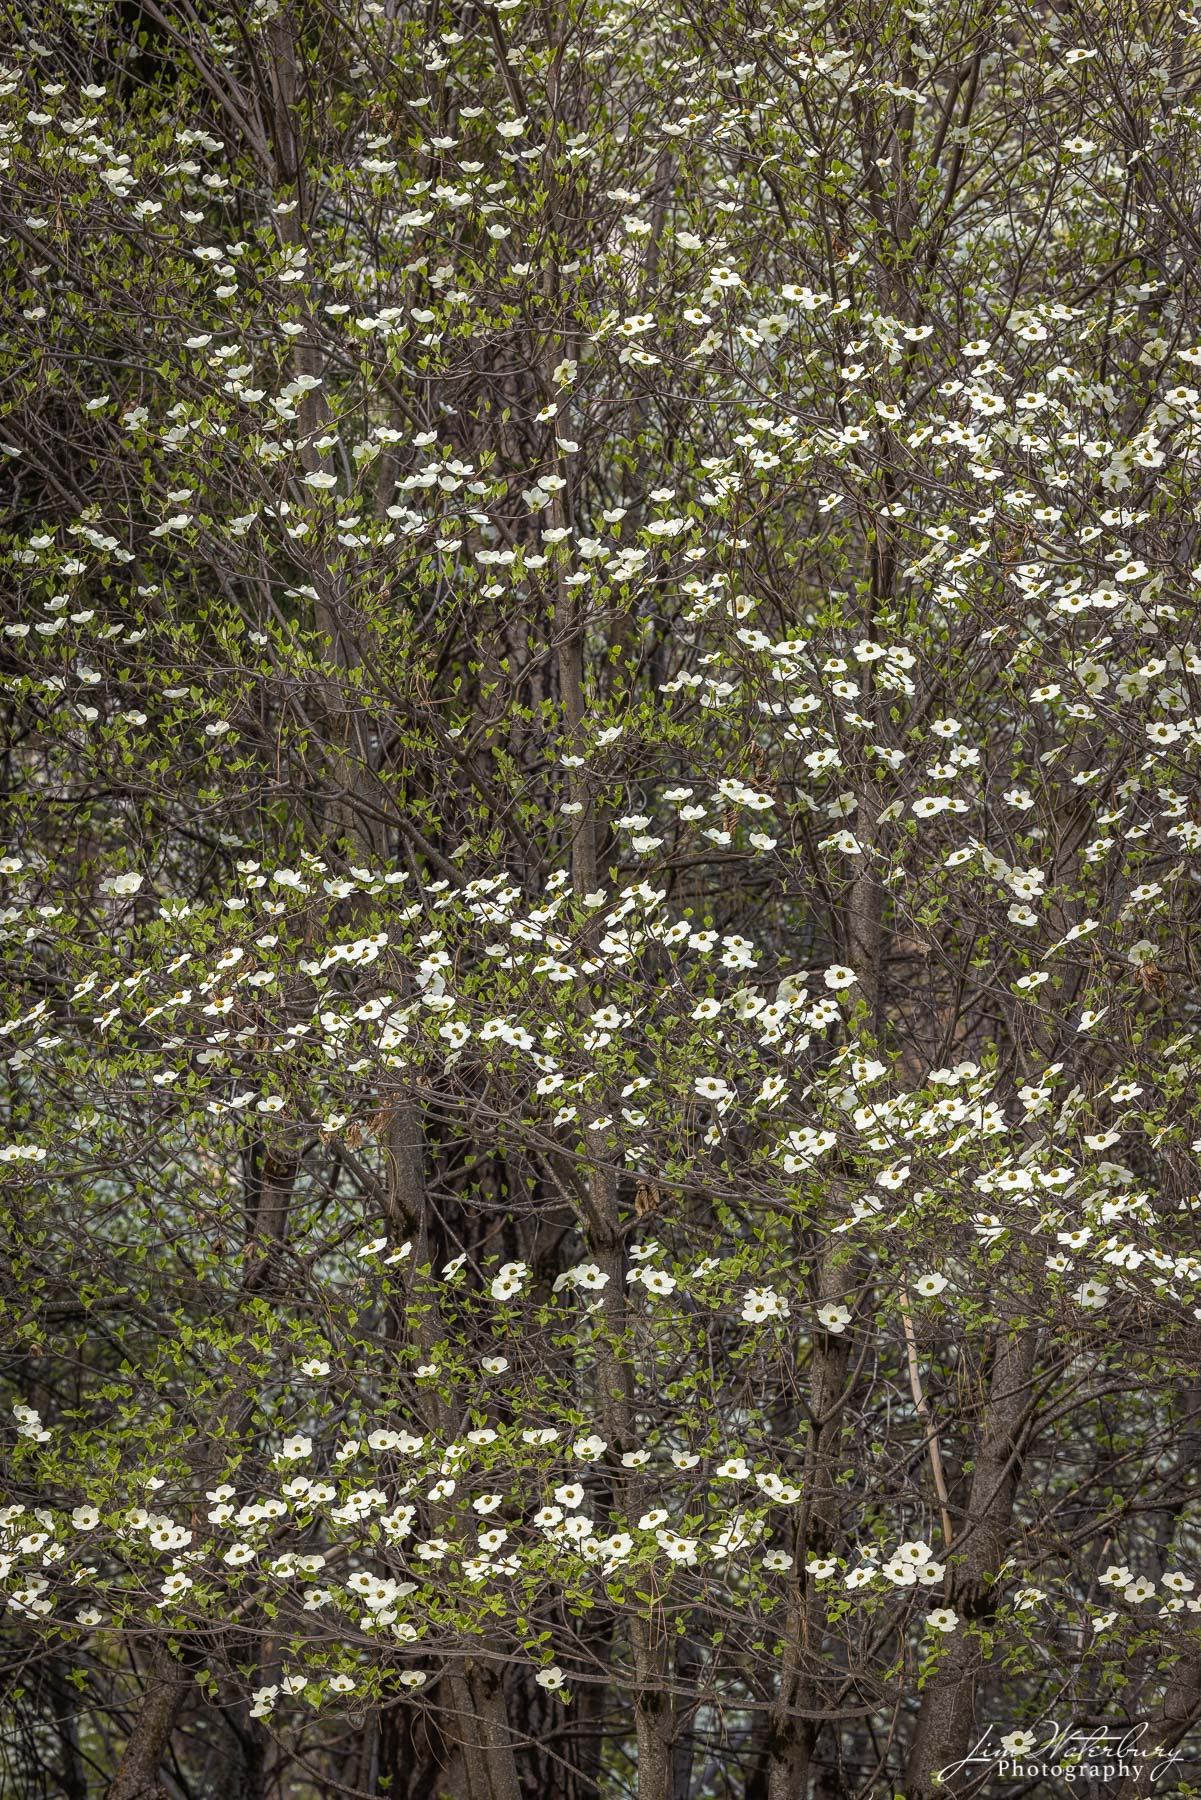 Dogwood trees in full bloom in the forest at the Housekeeping Camp, Yosemite Valley